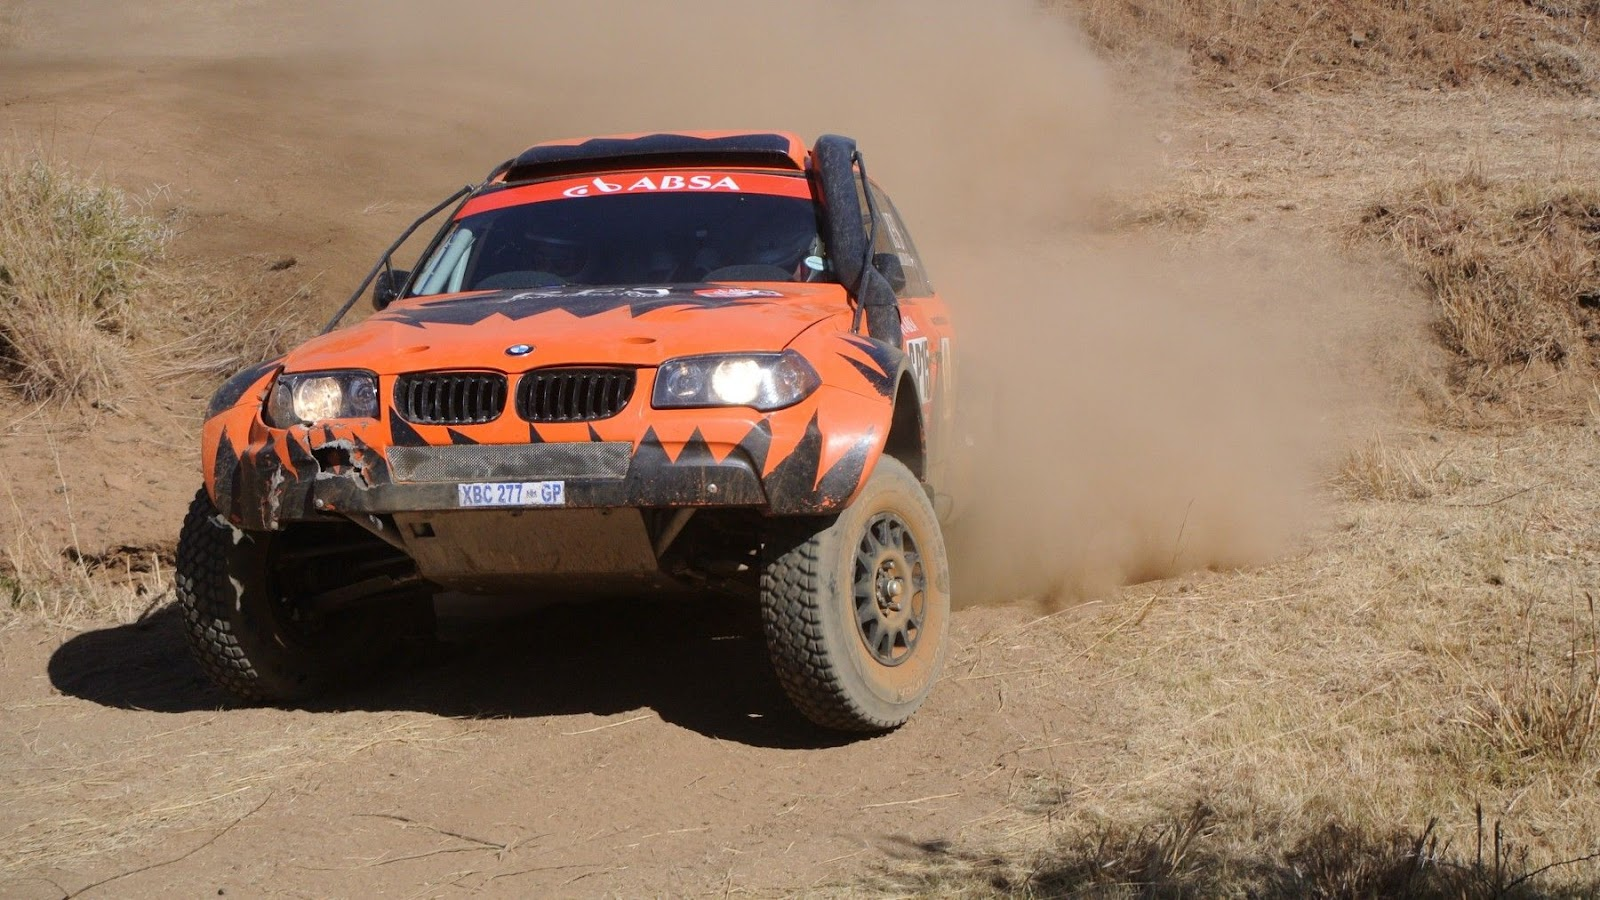 RFS BMW X3 off-road race car 2